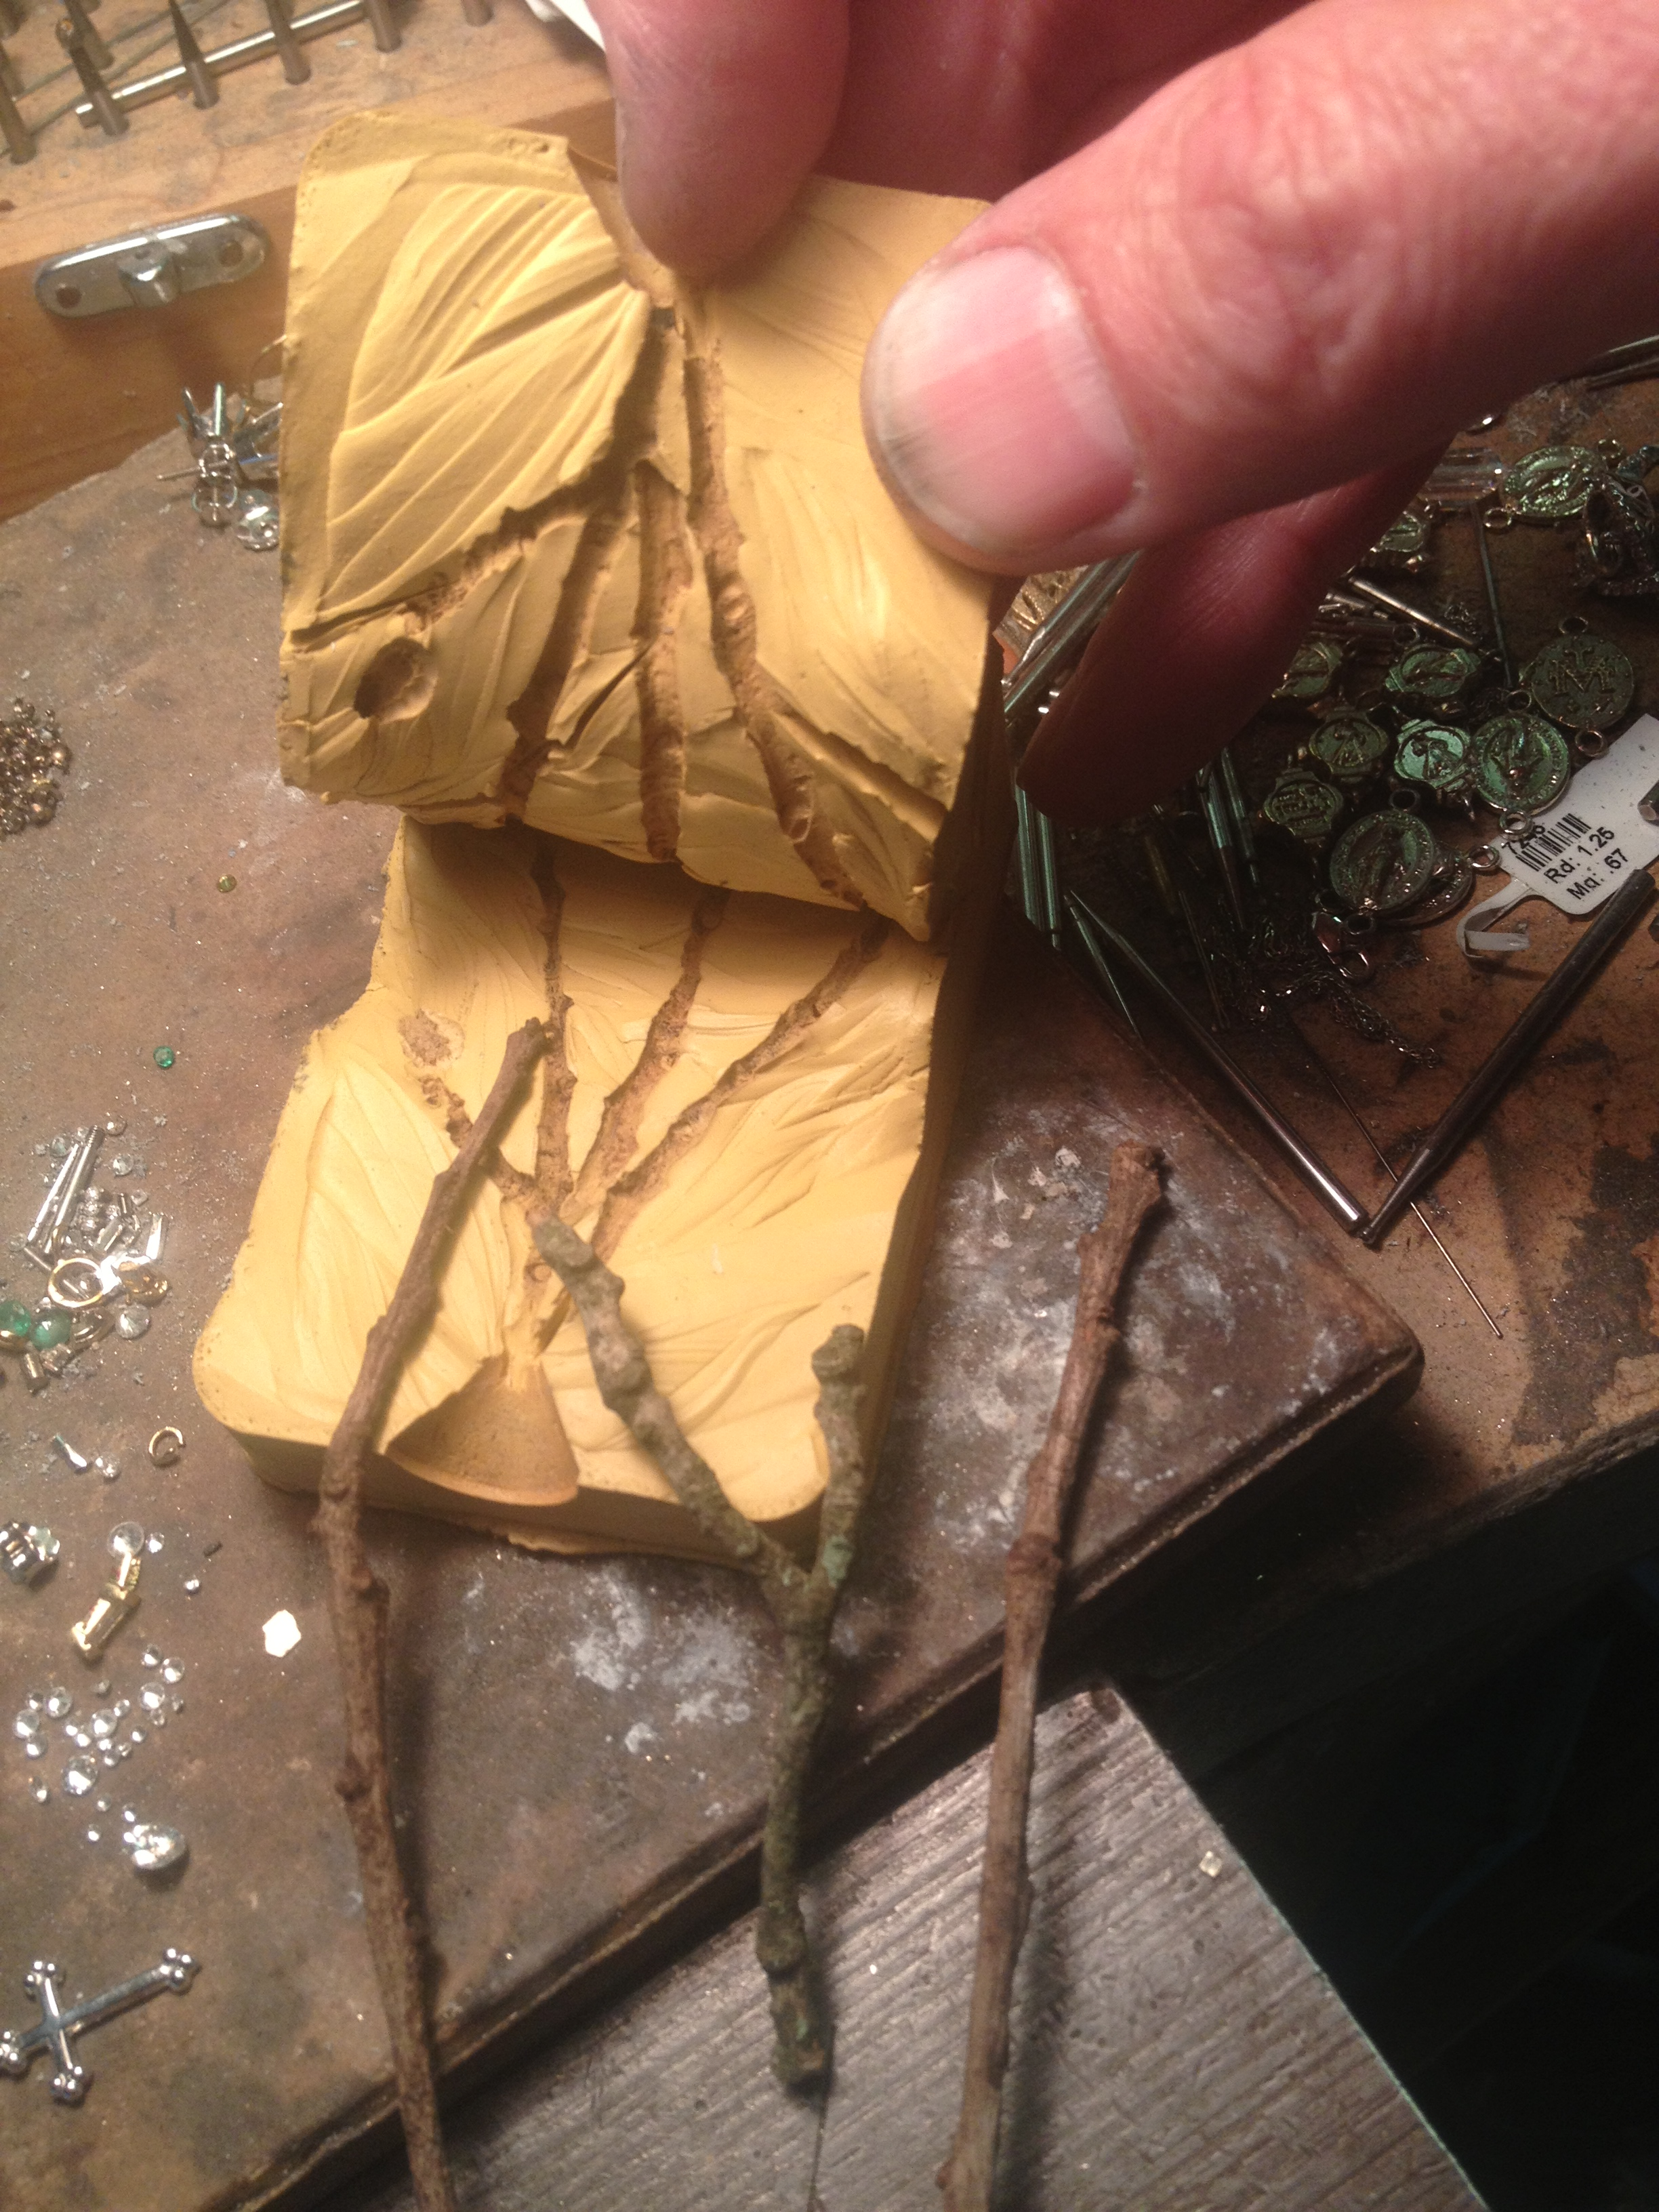 Using the collected twigs, we make a rubber mold of each elament of the necklace